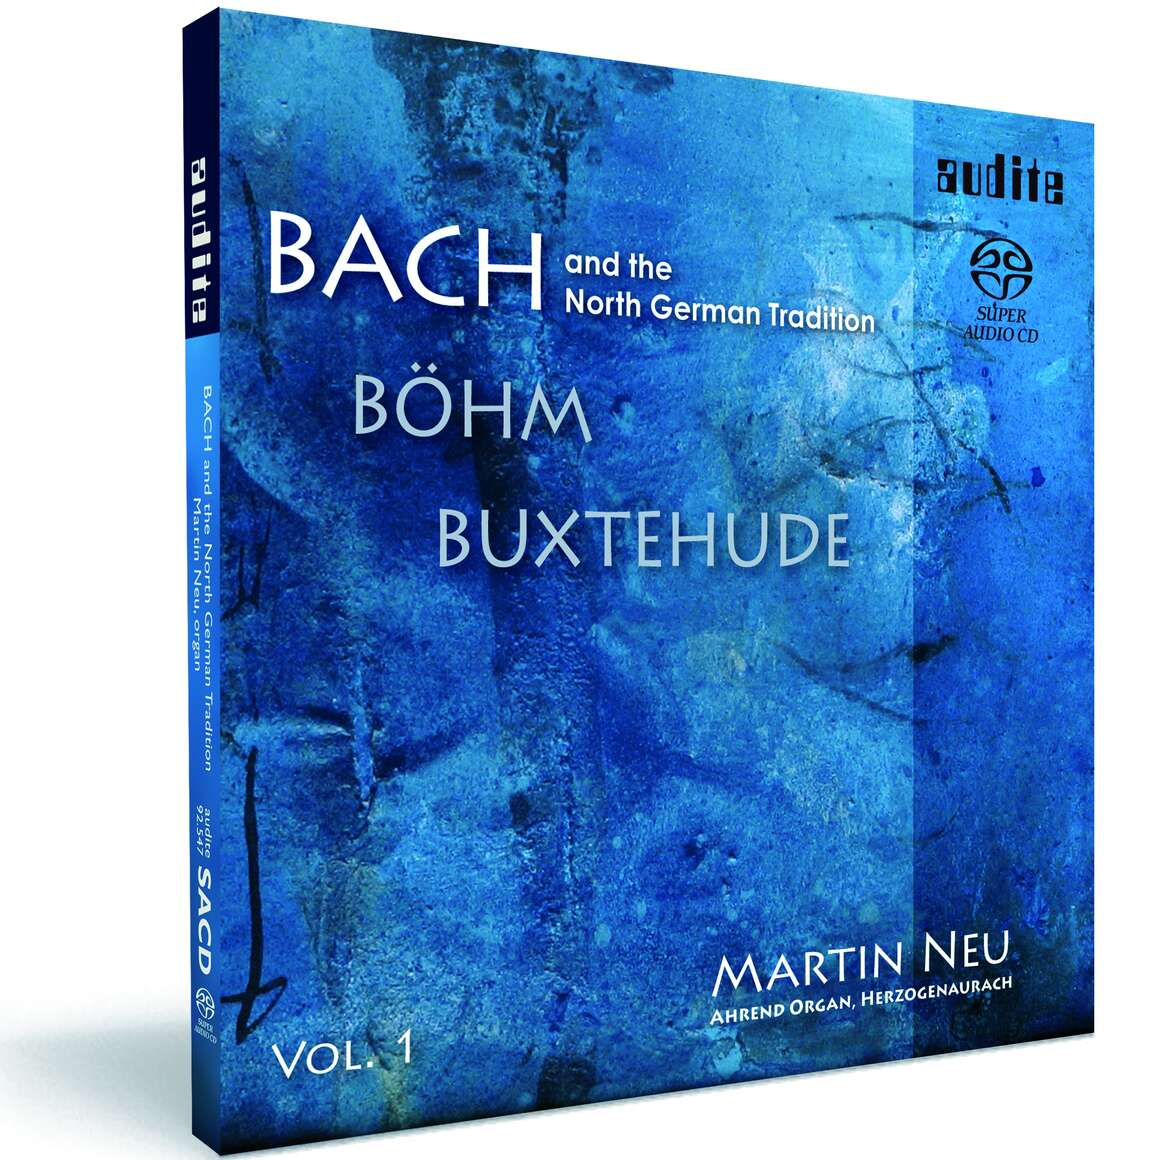 Bach and the North German Tradition Vol. I